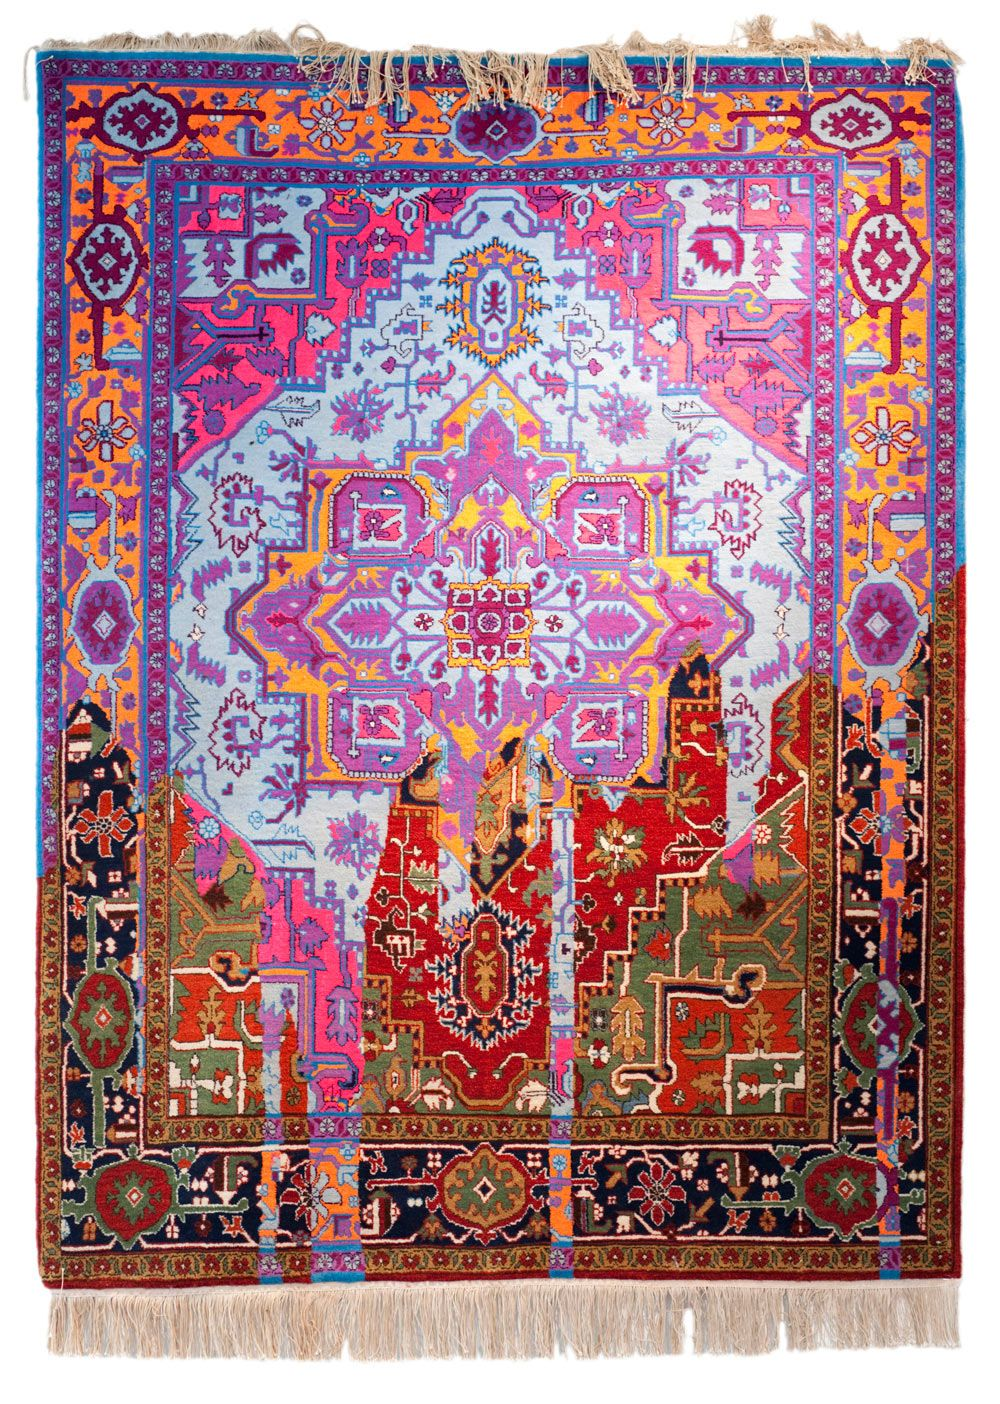 Art Deco Style Nepalese Hand Knotted Carpet Rug With Lineal Art Deco Design 1stdibs Com Art Deco Design Rugs On Carpet Art Deco Fashion